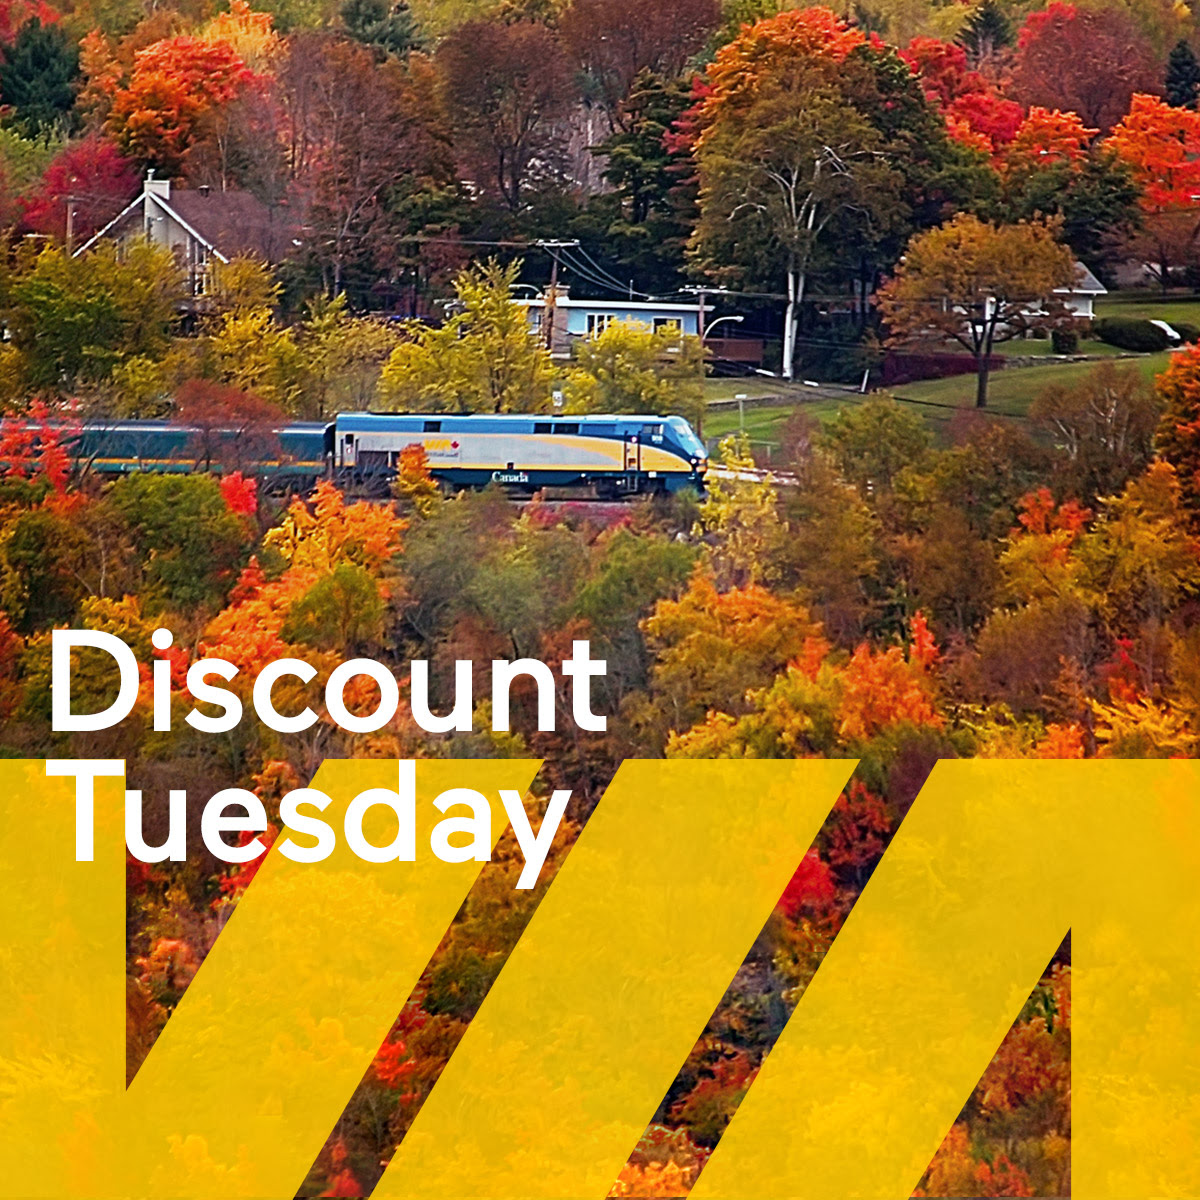 Via Rail Canada Discount Tuesday Offers: Big Savings Today!